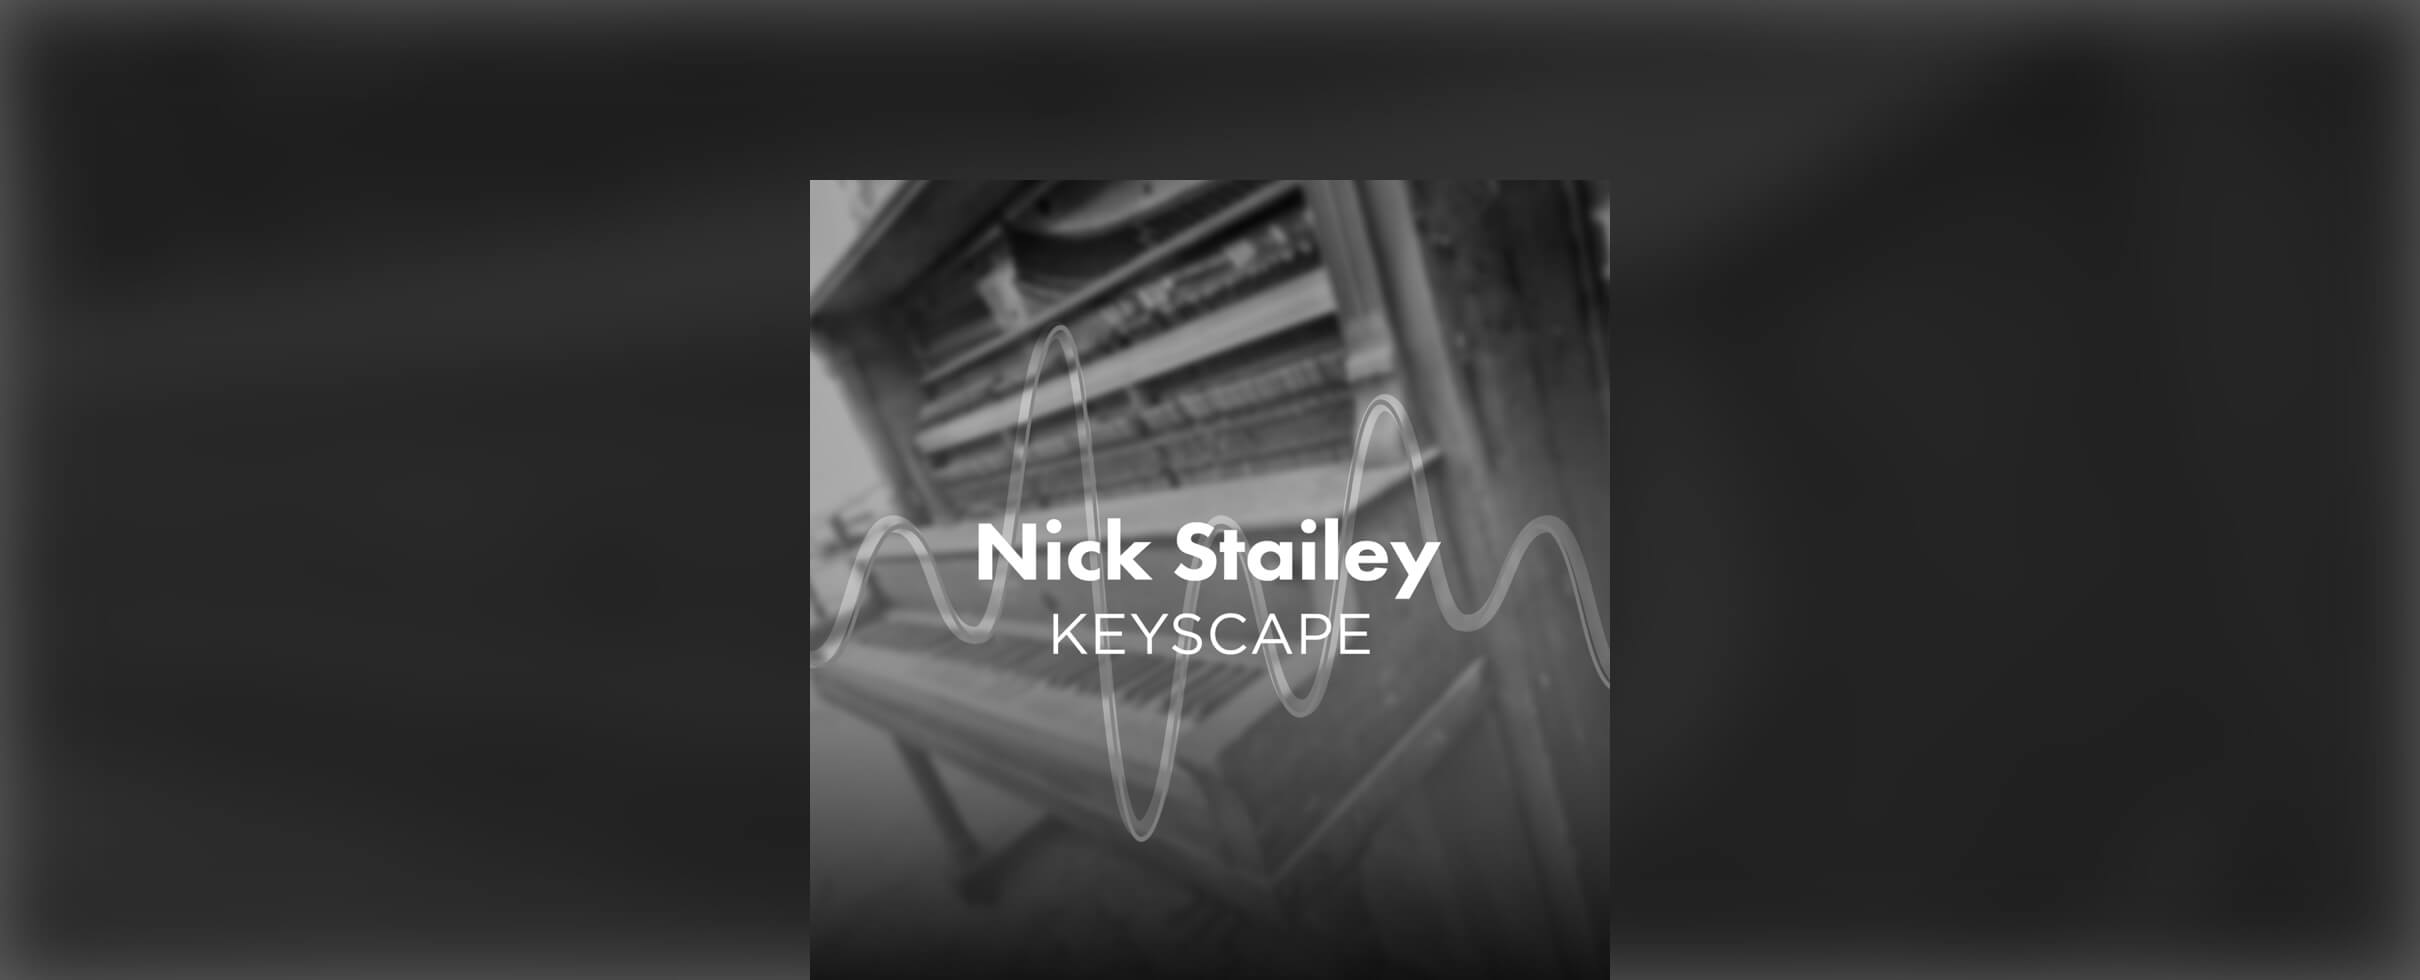 <h1>Keyscape</h1> <strong>Nick Stailey</strong>